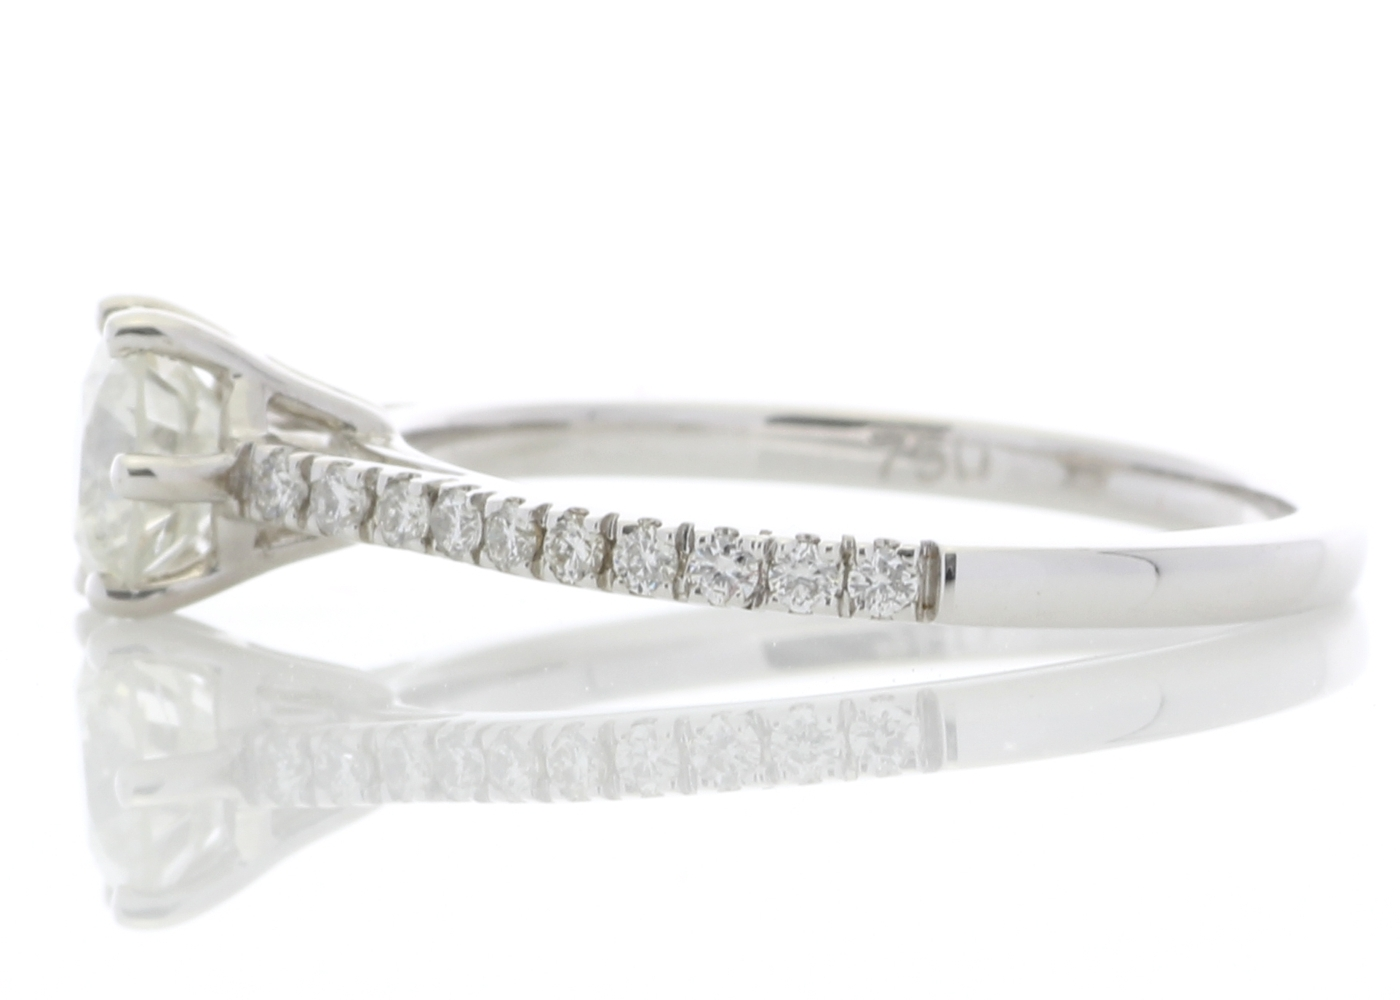 18ct White Gold Solitaire Diamond ring With Stone Set Shoulders 0.90 Carats - Image 3 of 5